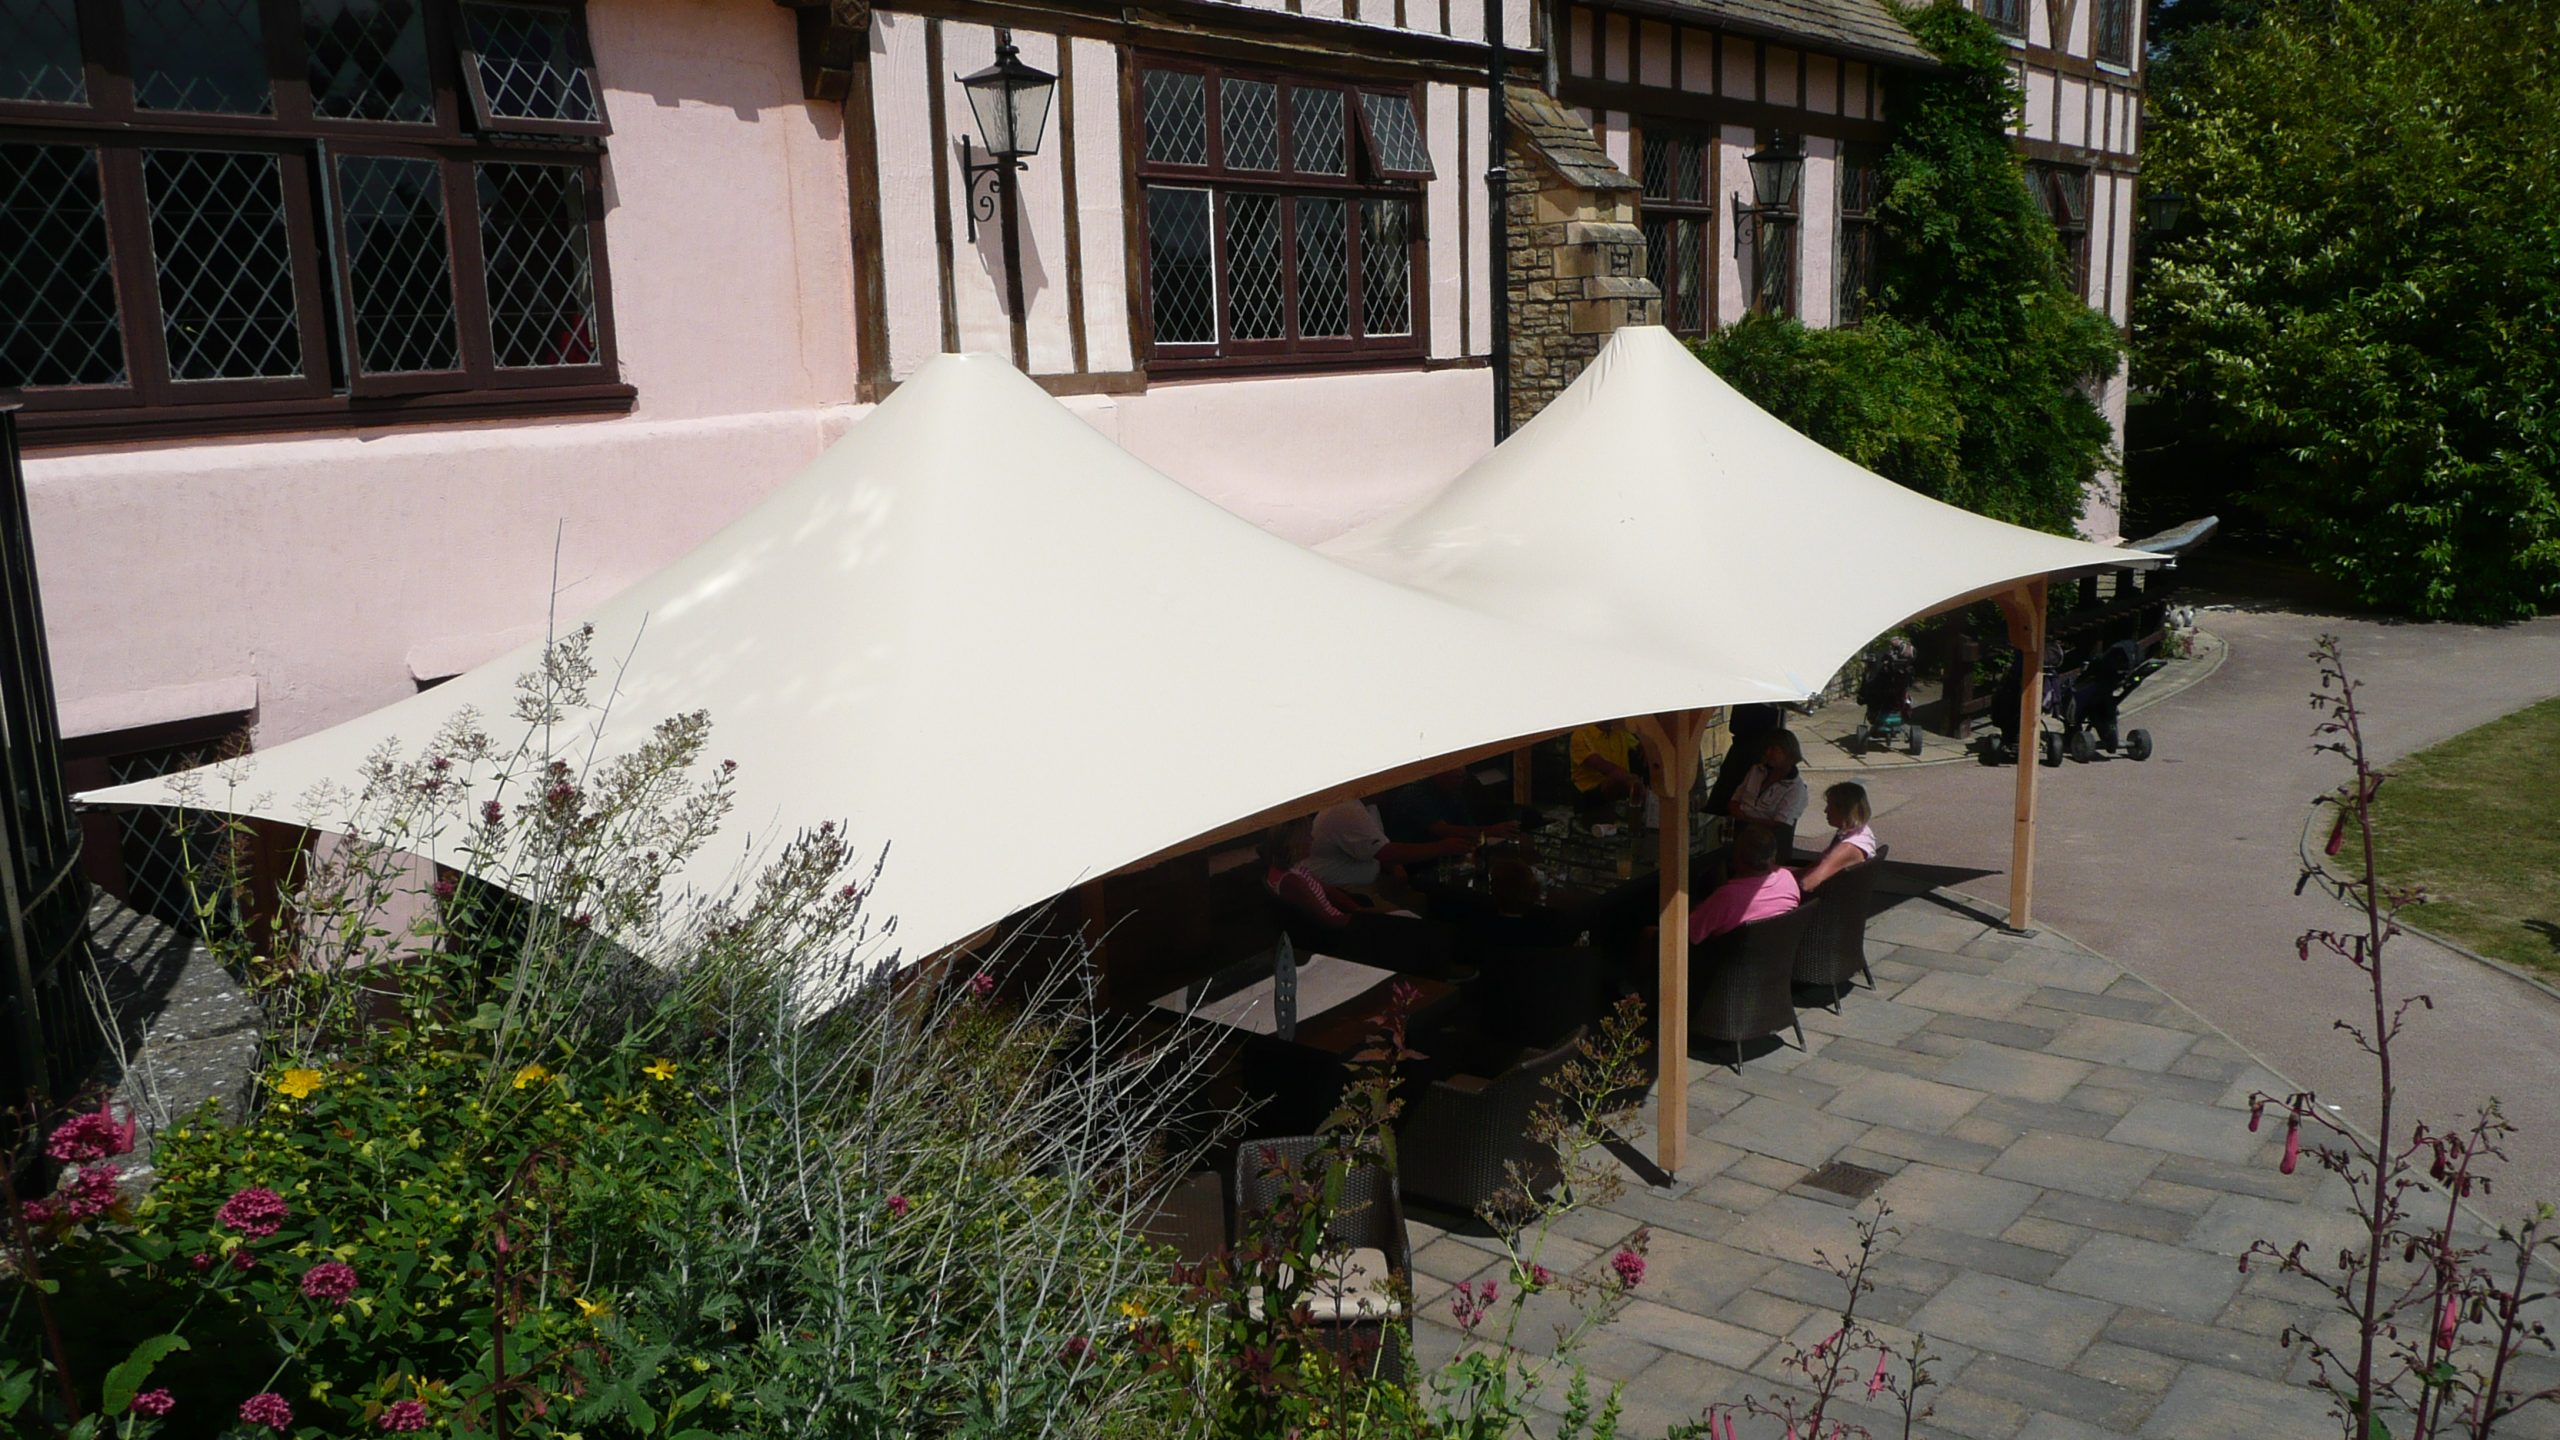 Amberley Tensile Fabric Conic Canopy